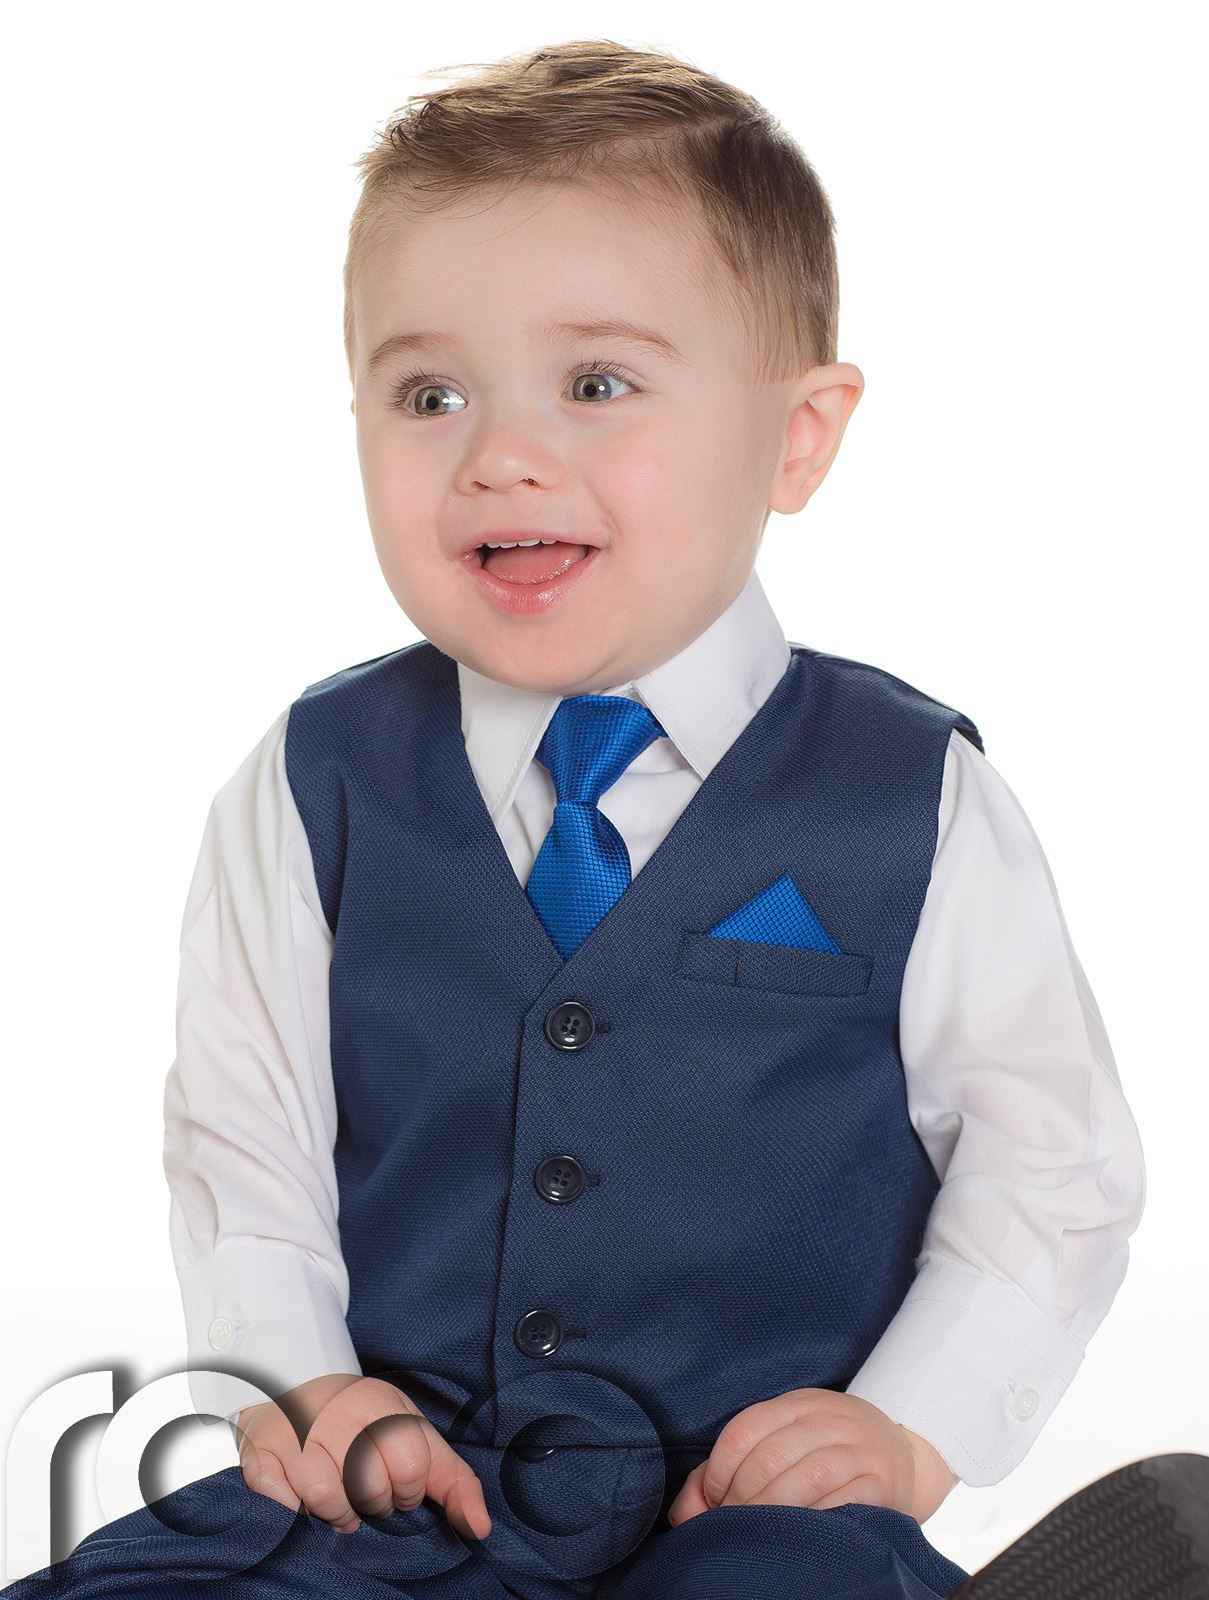 GEORGE Infant Boys Suit Blue & Tan Baby Dress Up Outfit Shirt Vest Tie & Pants. Sold by The Primrose Lane. $ $ Dockers Infant & Toddler Boys' Dress Shirt, Vest, Bow Tie & Dress Pants. Sold by Sears. $ - $ Gino Giovanni Baby Toddler Boy Seersucker Summer Suit .